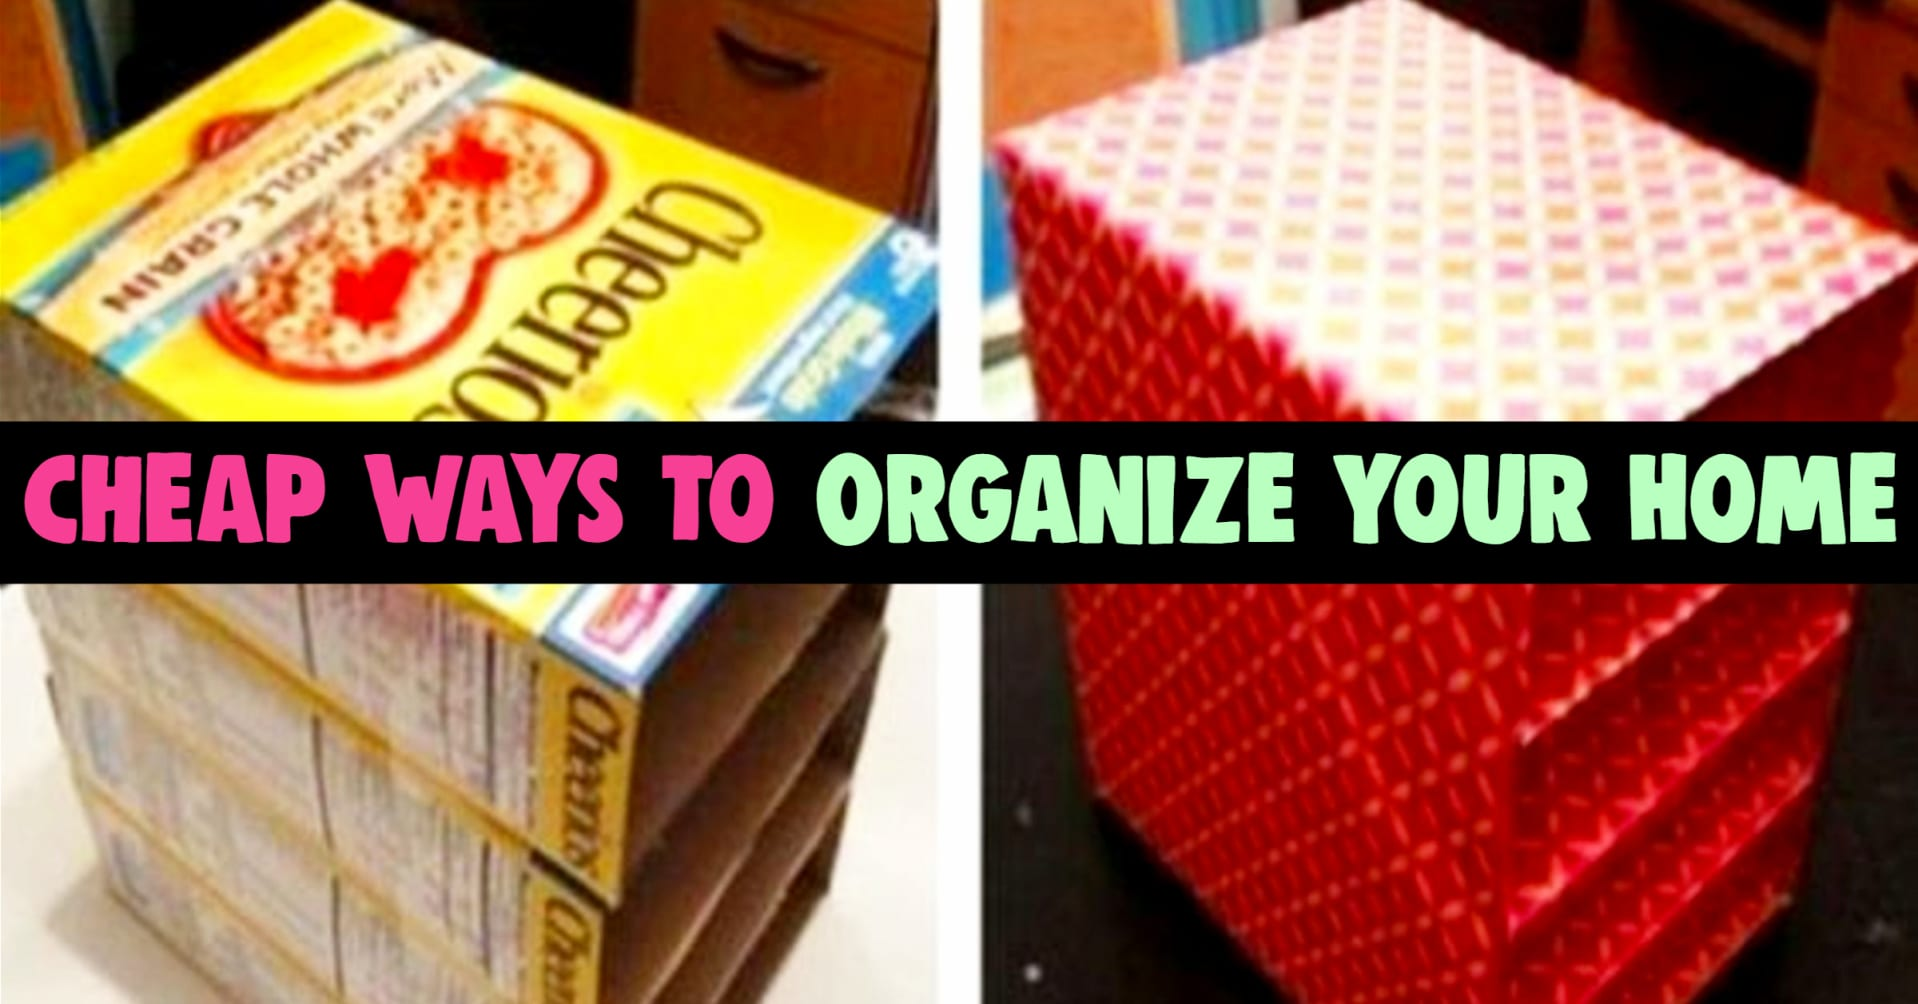 Home organization services OR home organization HACKS!  These inexpensive home organization ideas are cheaper than paying a home organization company.  If you watch home organization shows, you will love these professional organizing tips